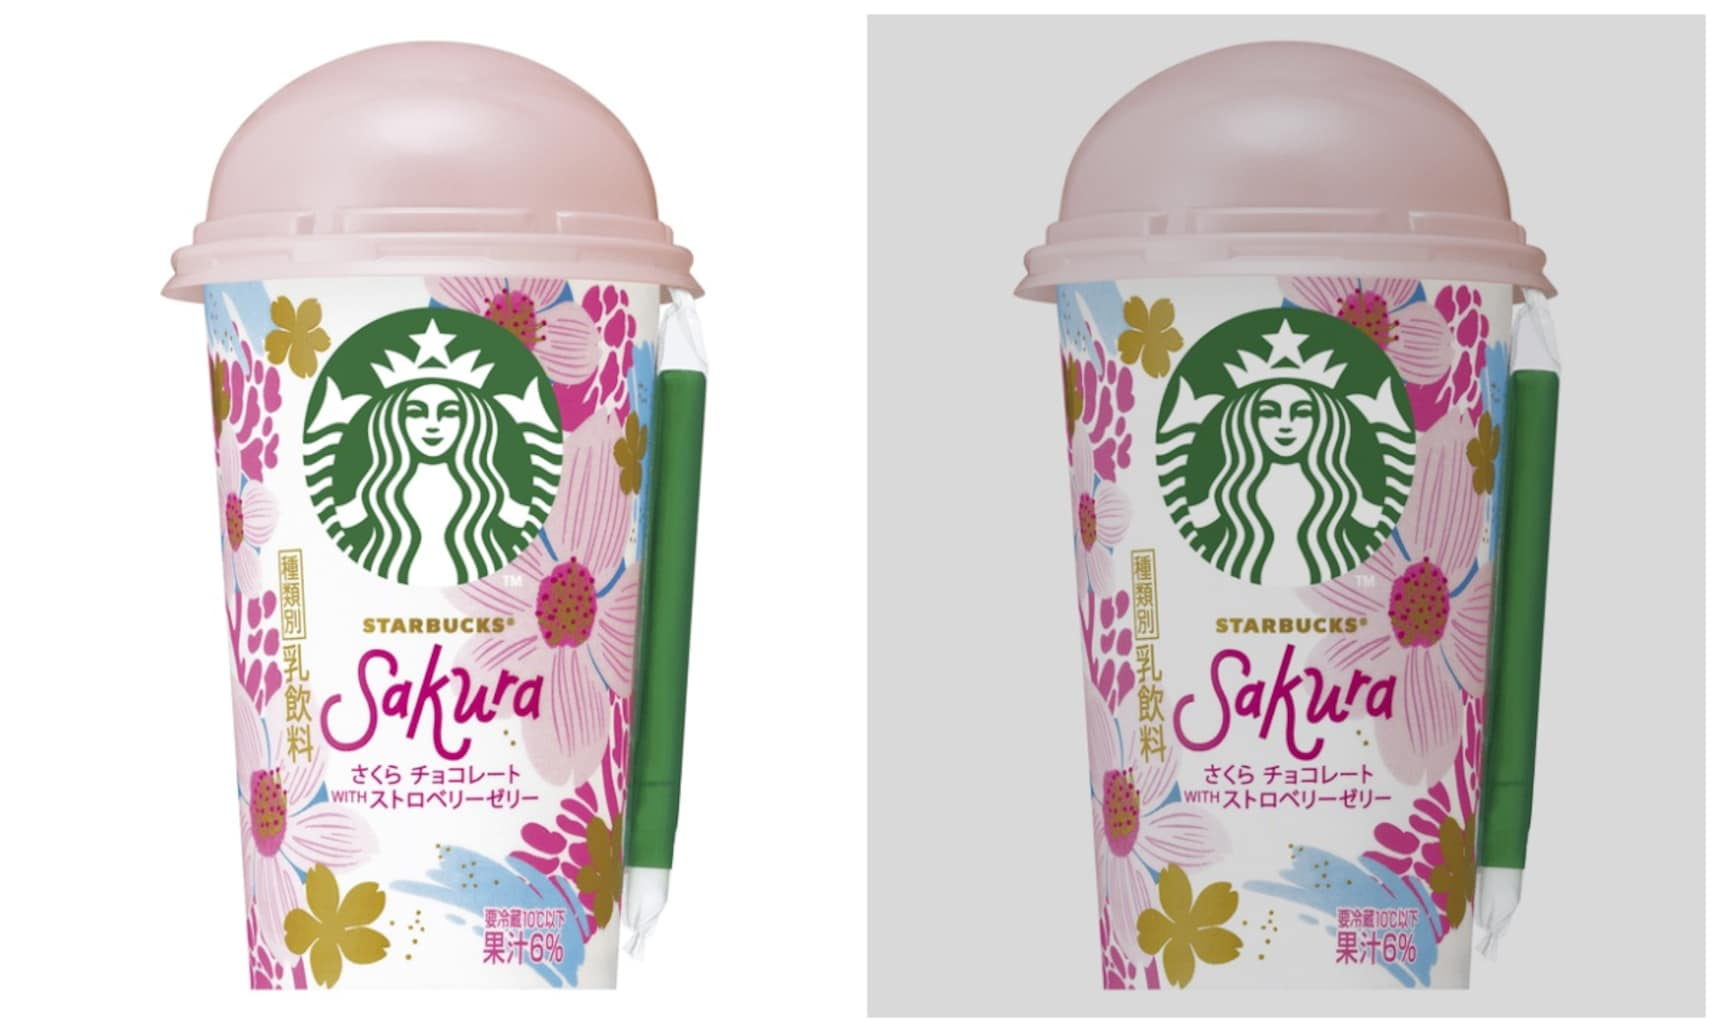 Starbucks Japan's First Sakura Drink of 2019